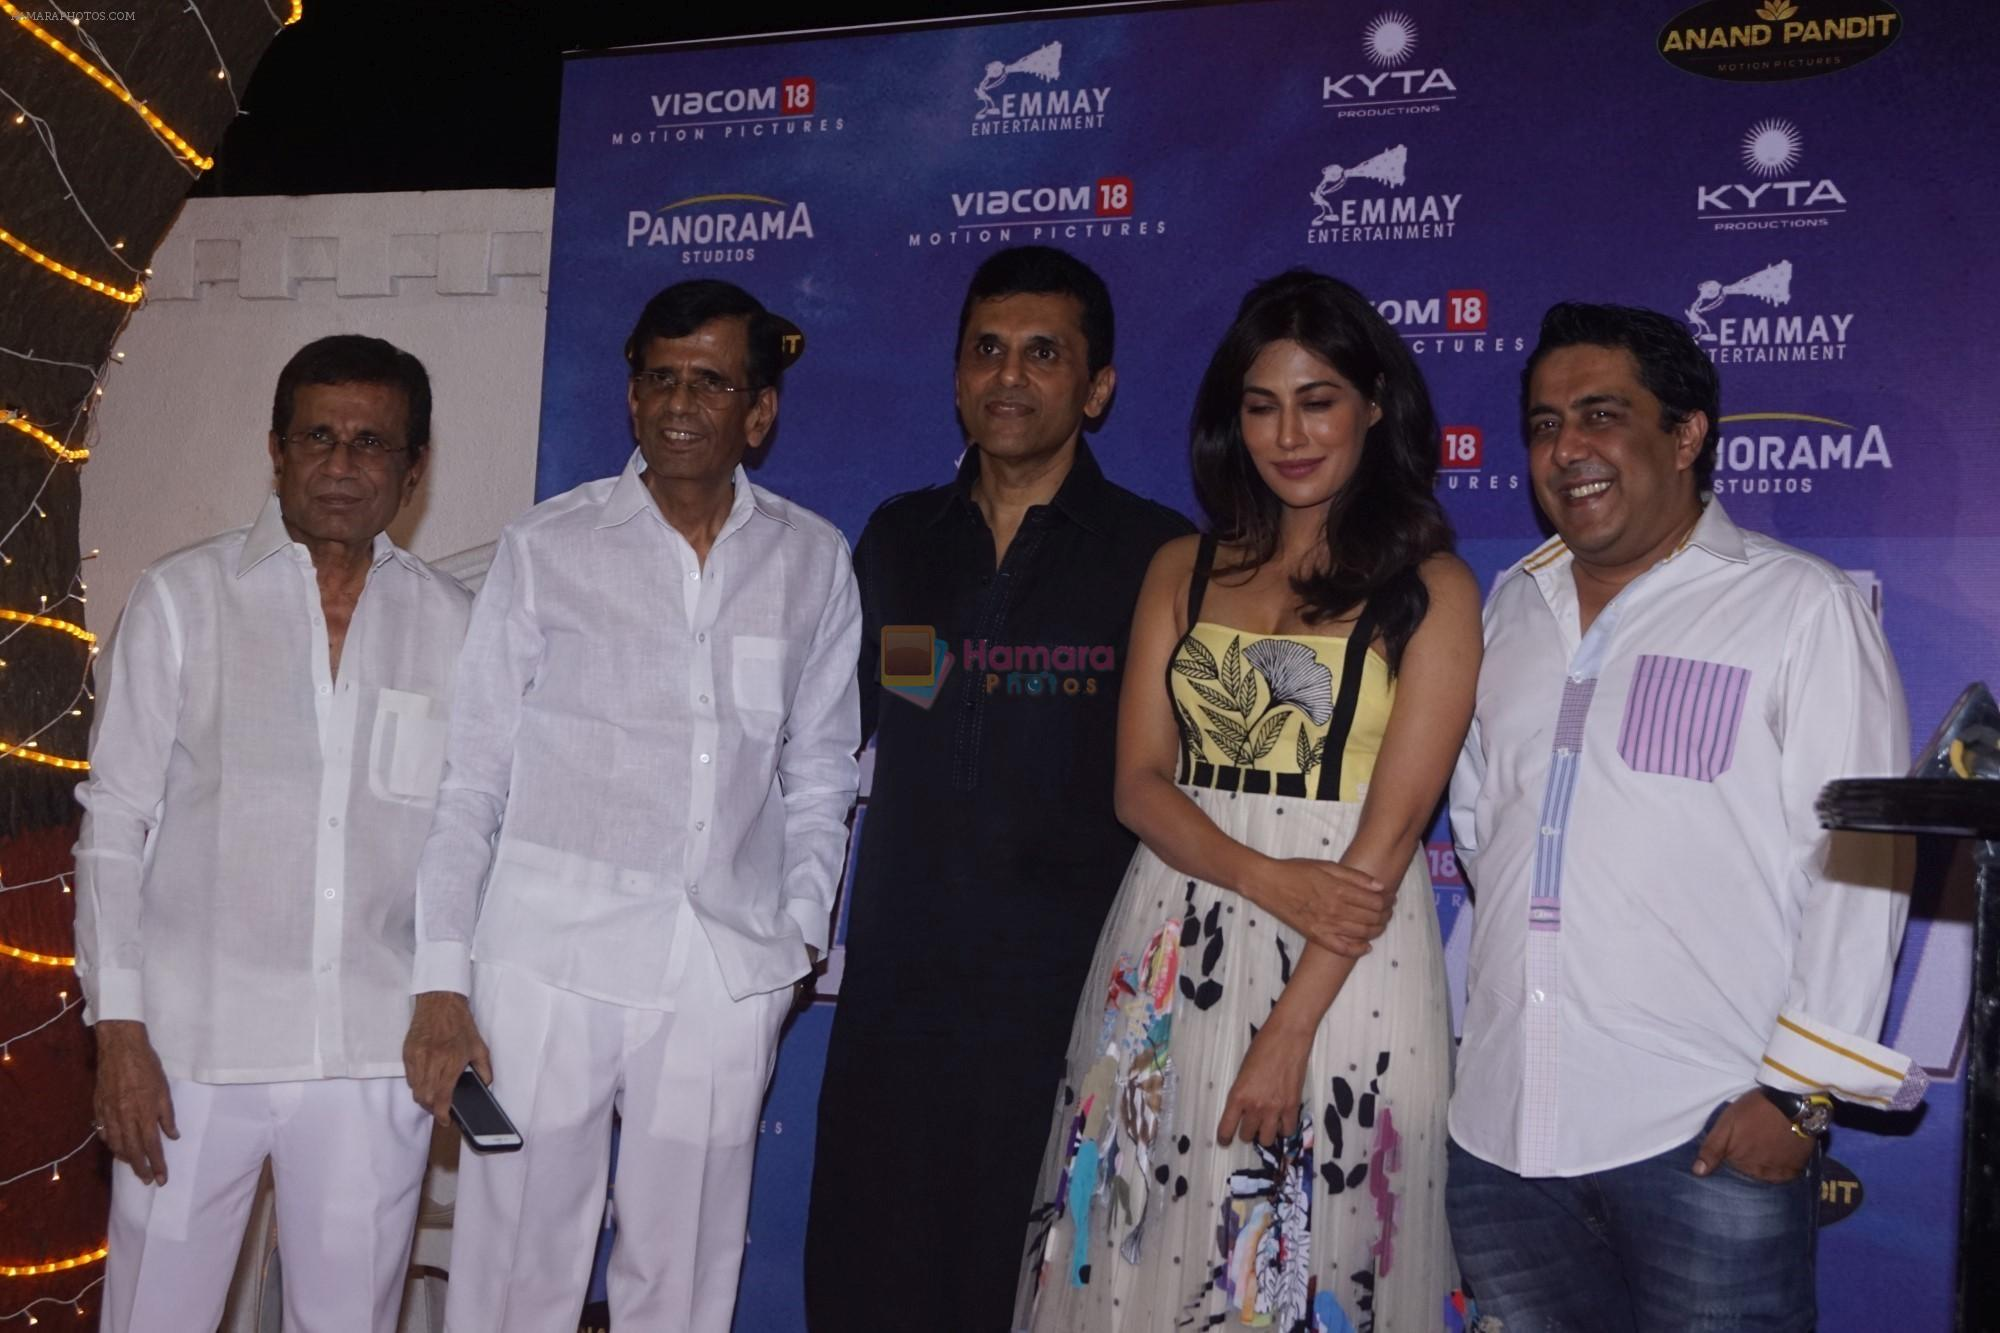 Abbas�Mustan, Chitrangada Singh, Anand Pandit at Anand pandit Hosted Success Party of Hindi Film Baazaar on 21st Nov 2018